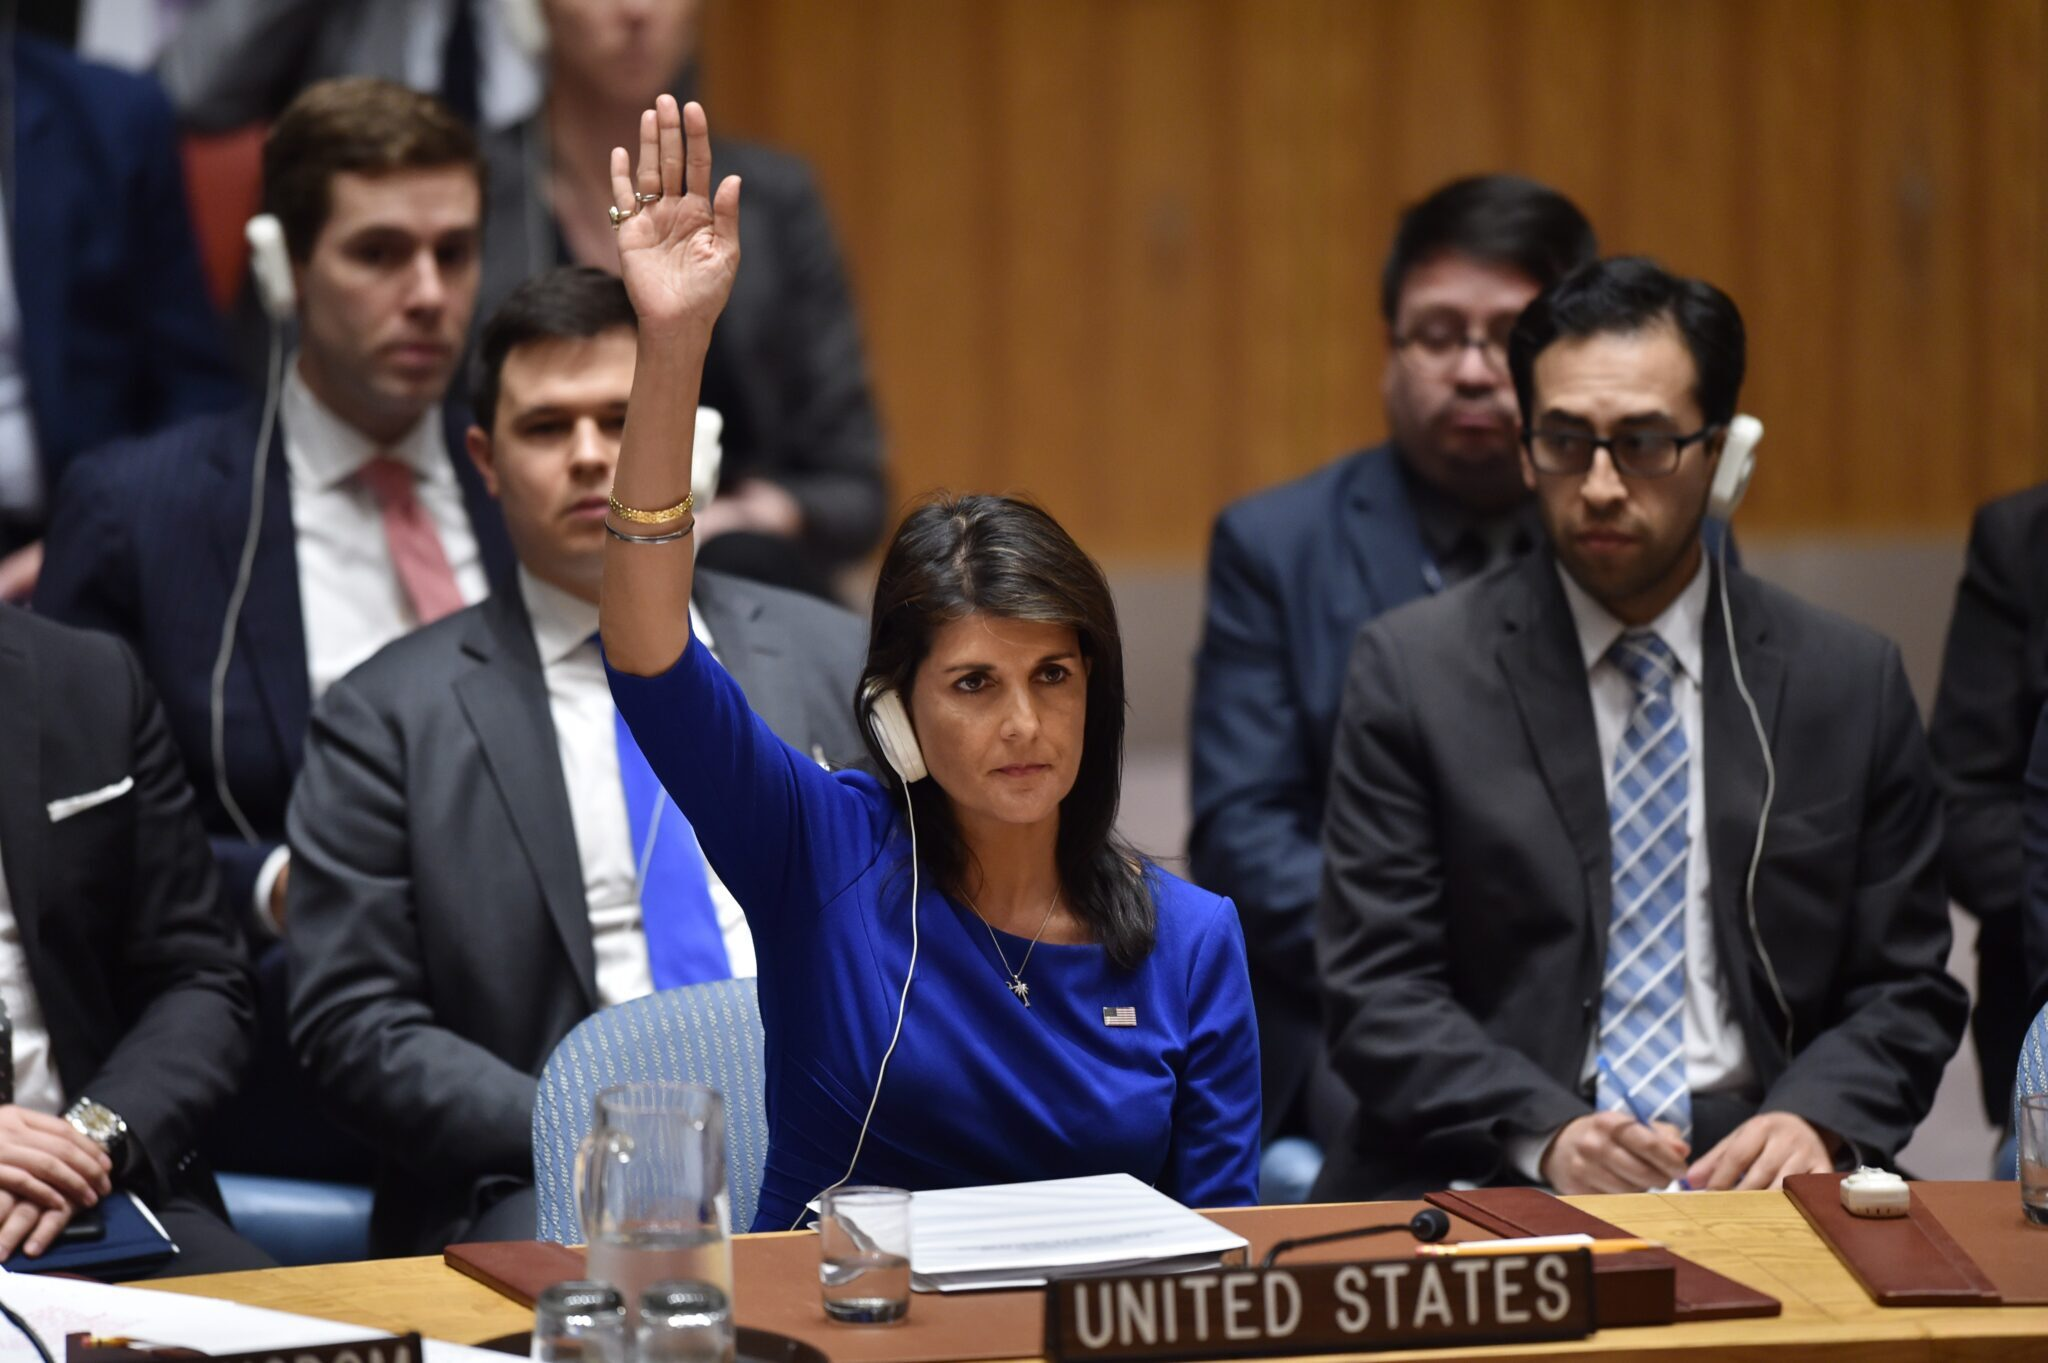 Translation- Nikki Haley